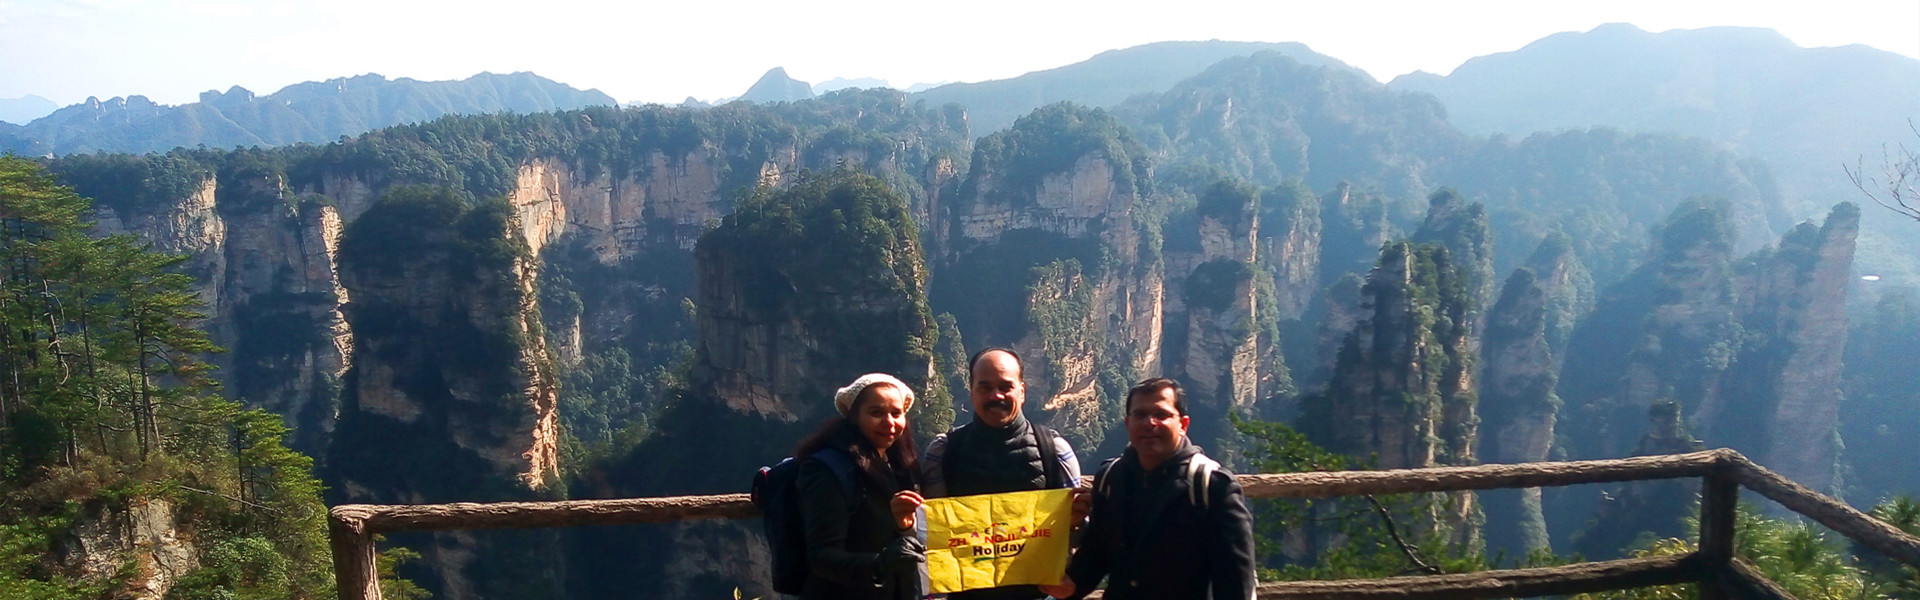 4 Days Small Group Zhangjiajie Avatar Tour with Glass Bridge